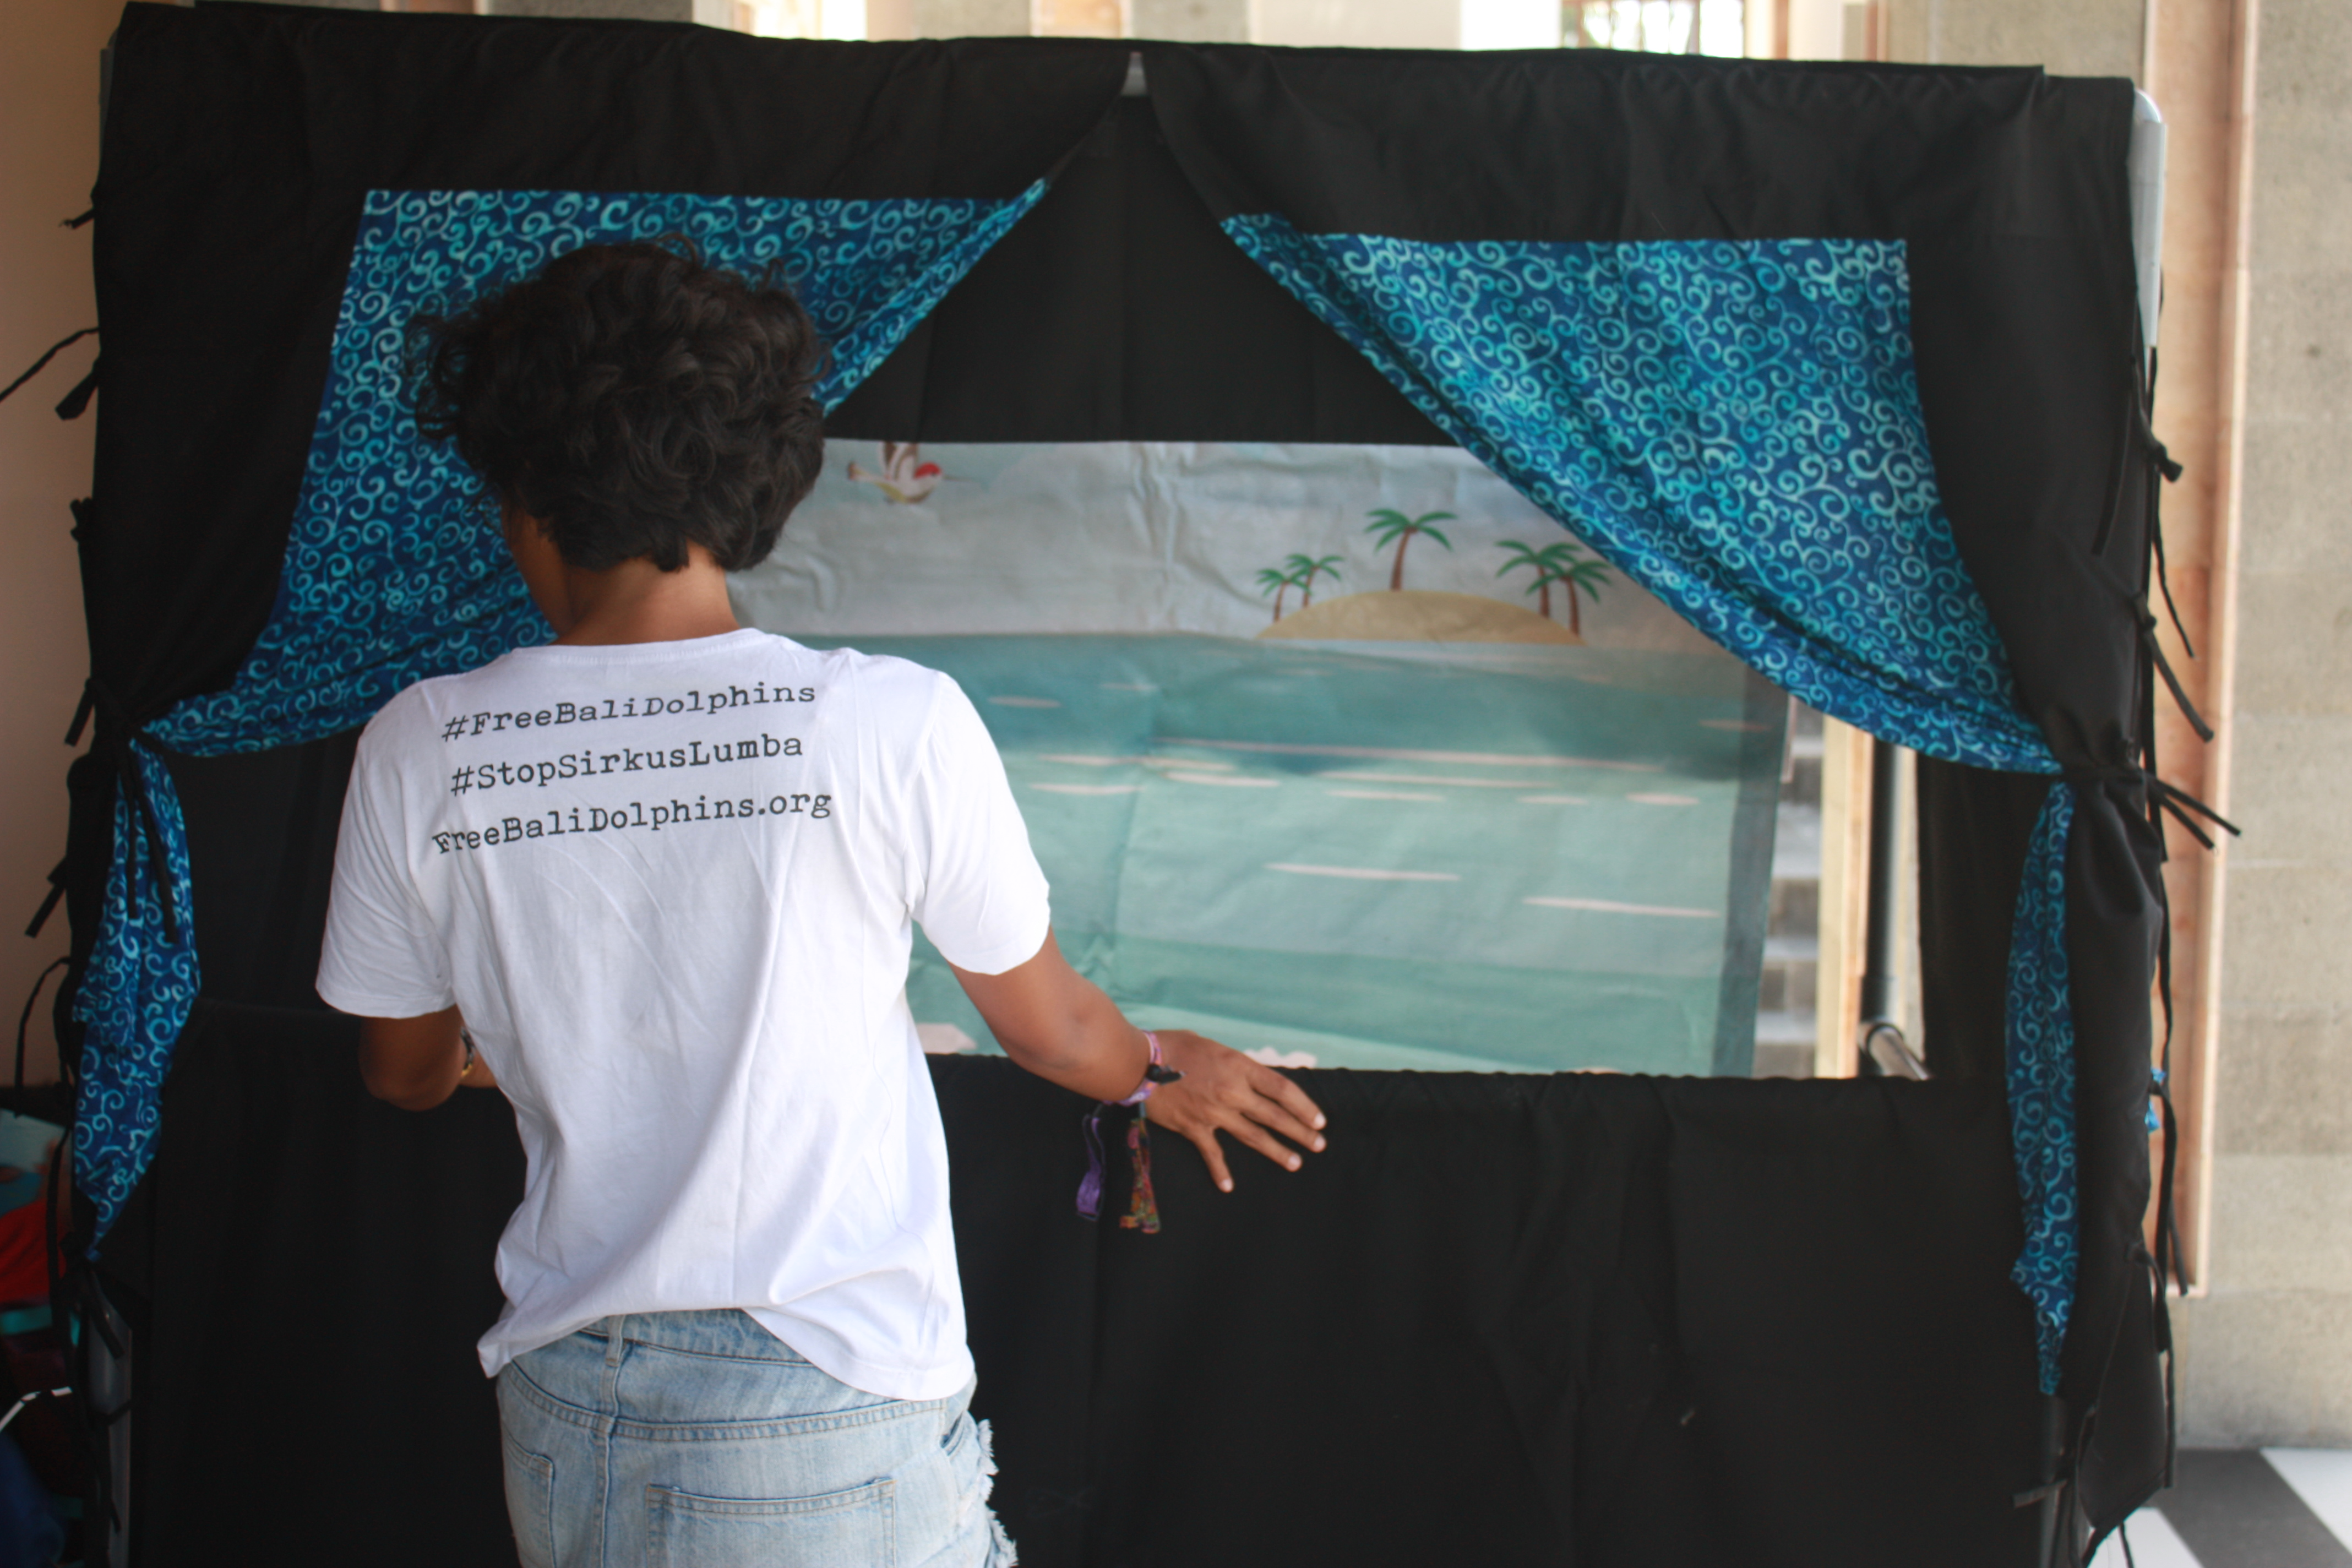 Puppet show promotes peaceful education, Indonesia.